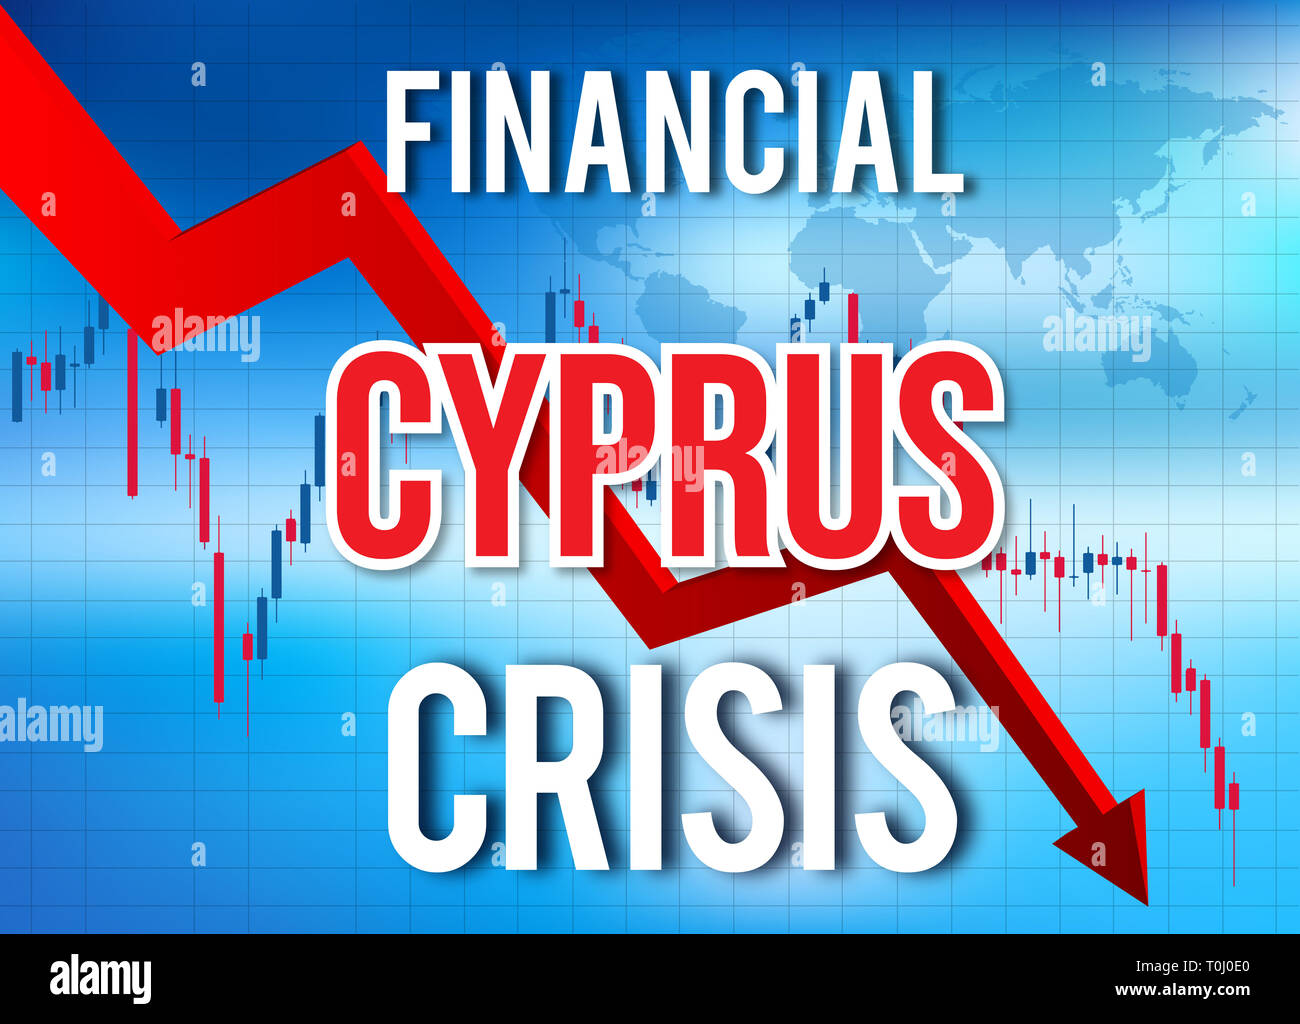 Cyprus Financial Crisis Economic Collapse Market Crash Global Meltdown Illustration. - Stock Image